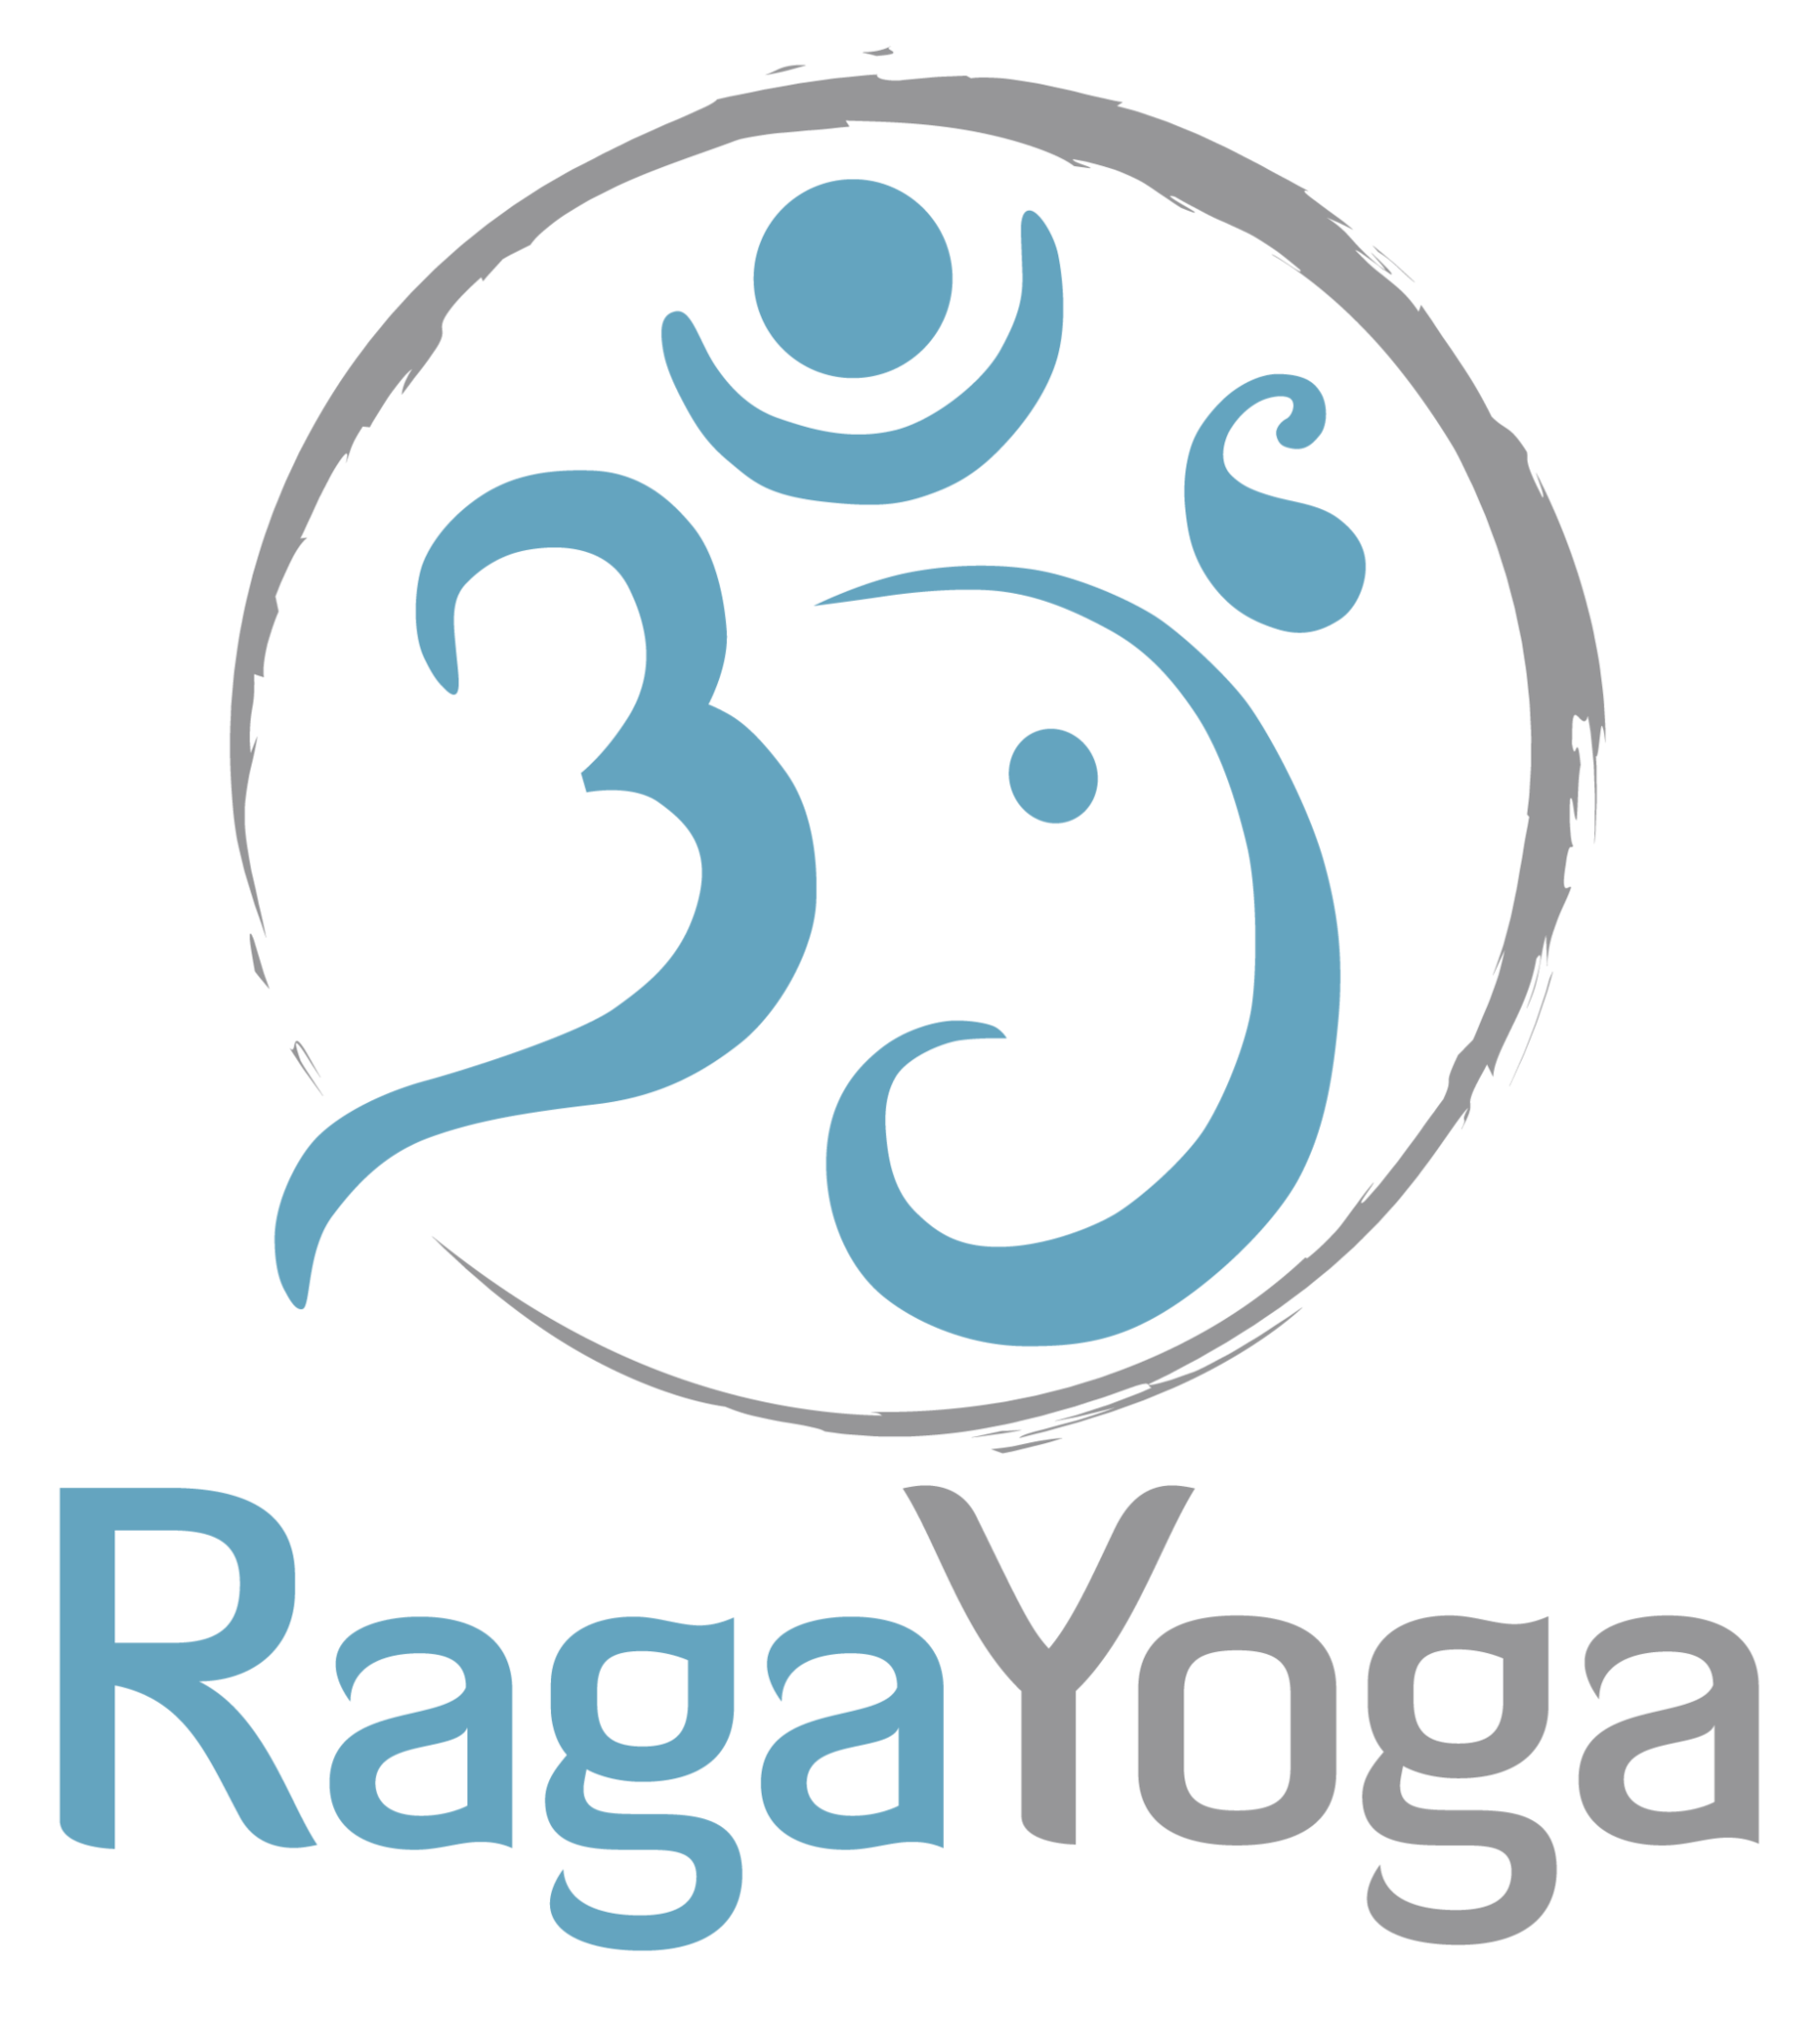 RagaYoga is a community-based yoga studio established to promote a healthy balanced life from the inside out. We believe the system of yoga is a tool to remove the physical, emotional or spiritual obstacles in one's life through mindful practice. RagaYoga will provide a variety of daily yoga classes, inspirational events, educational programs and other offerings to deepen one's personal study of the system of yoga.